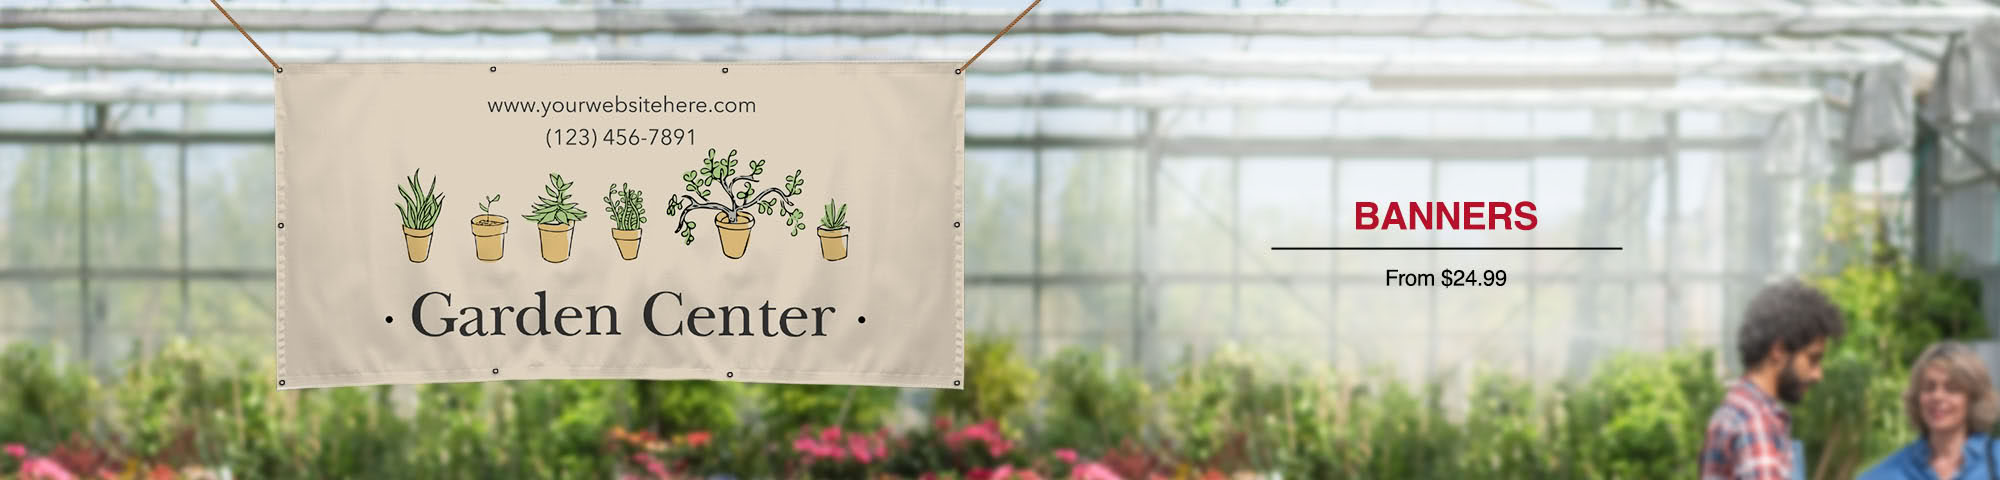 Postcards. Save 20% vs. the leading competitor.  From $75.99 for 500.